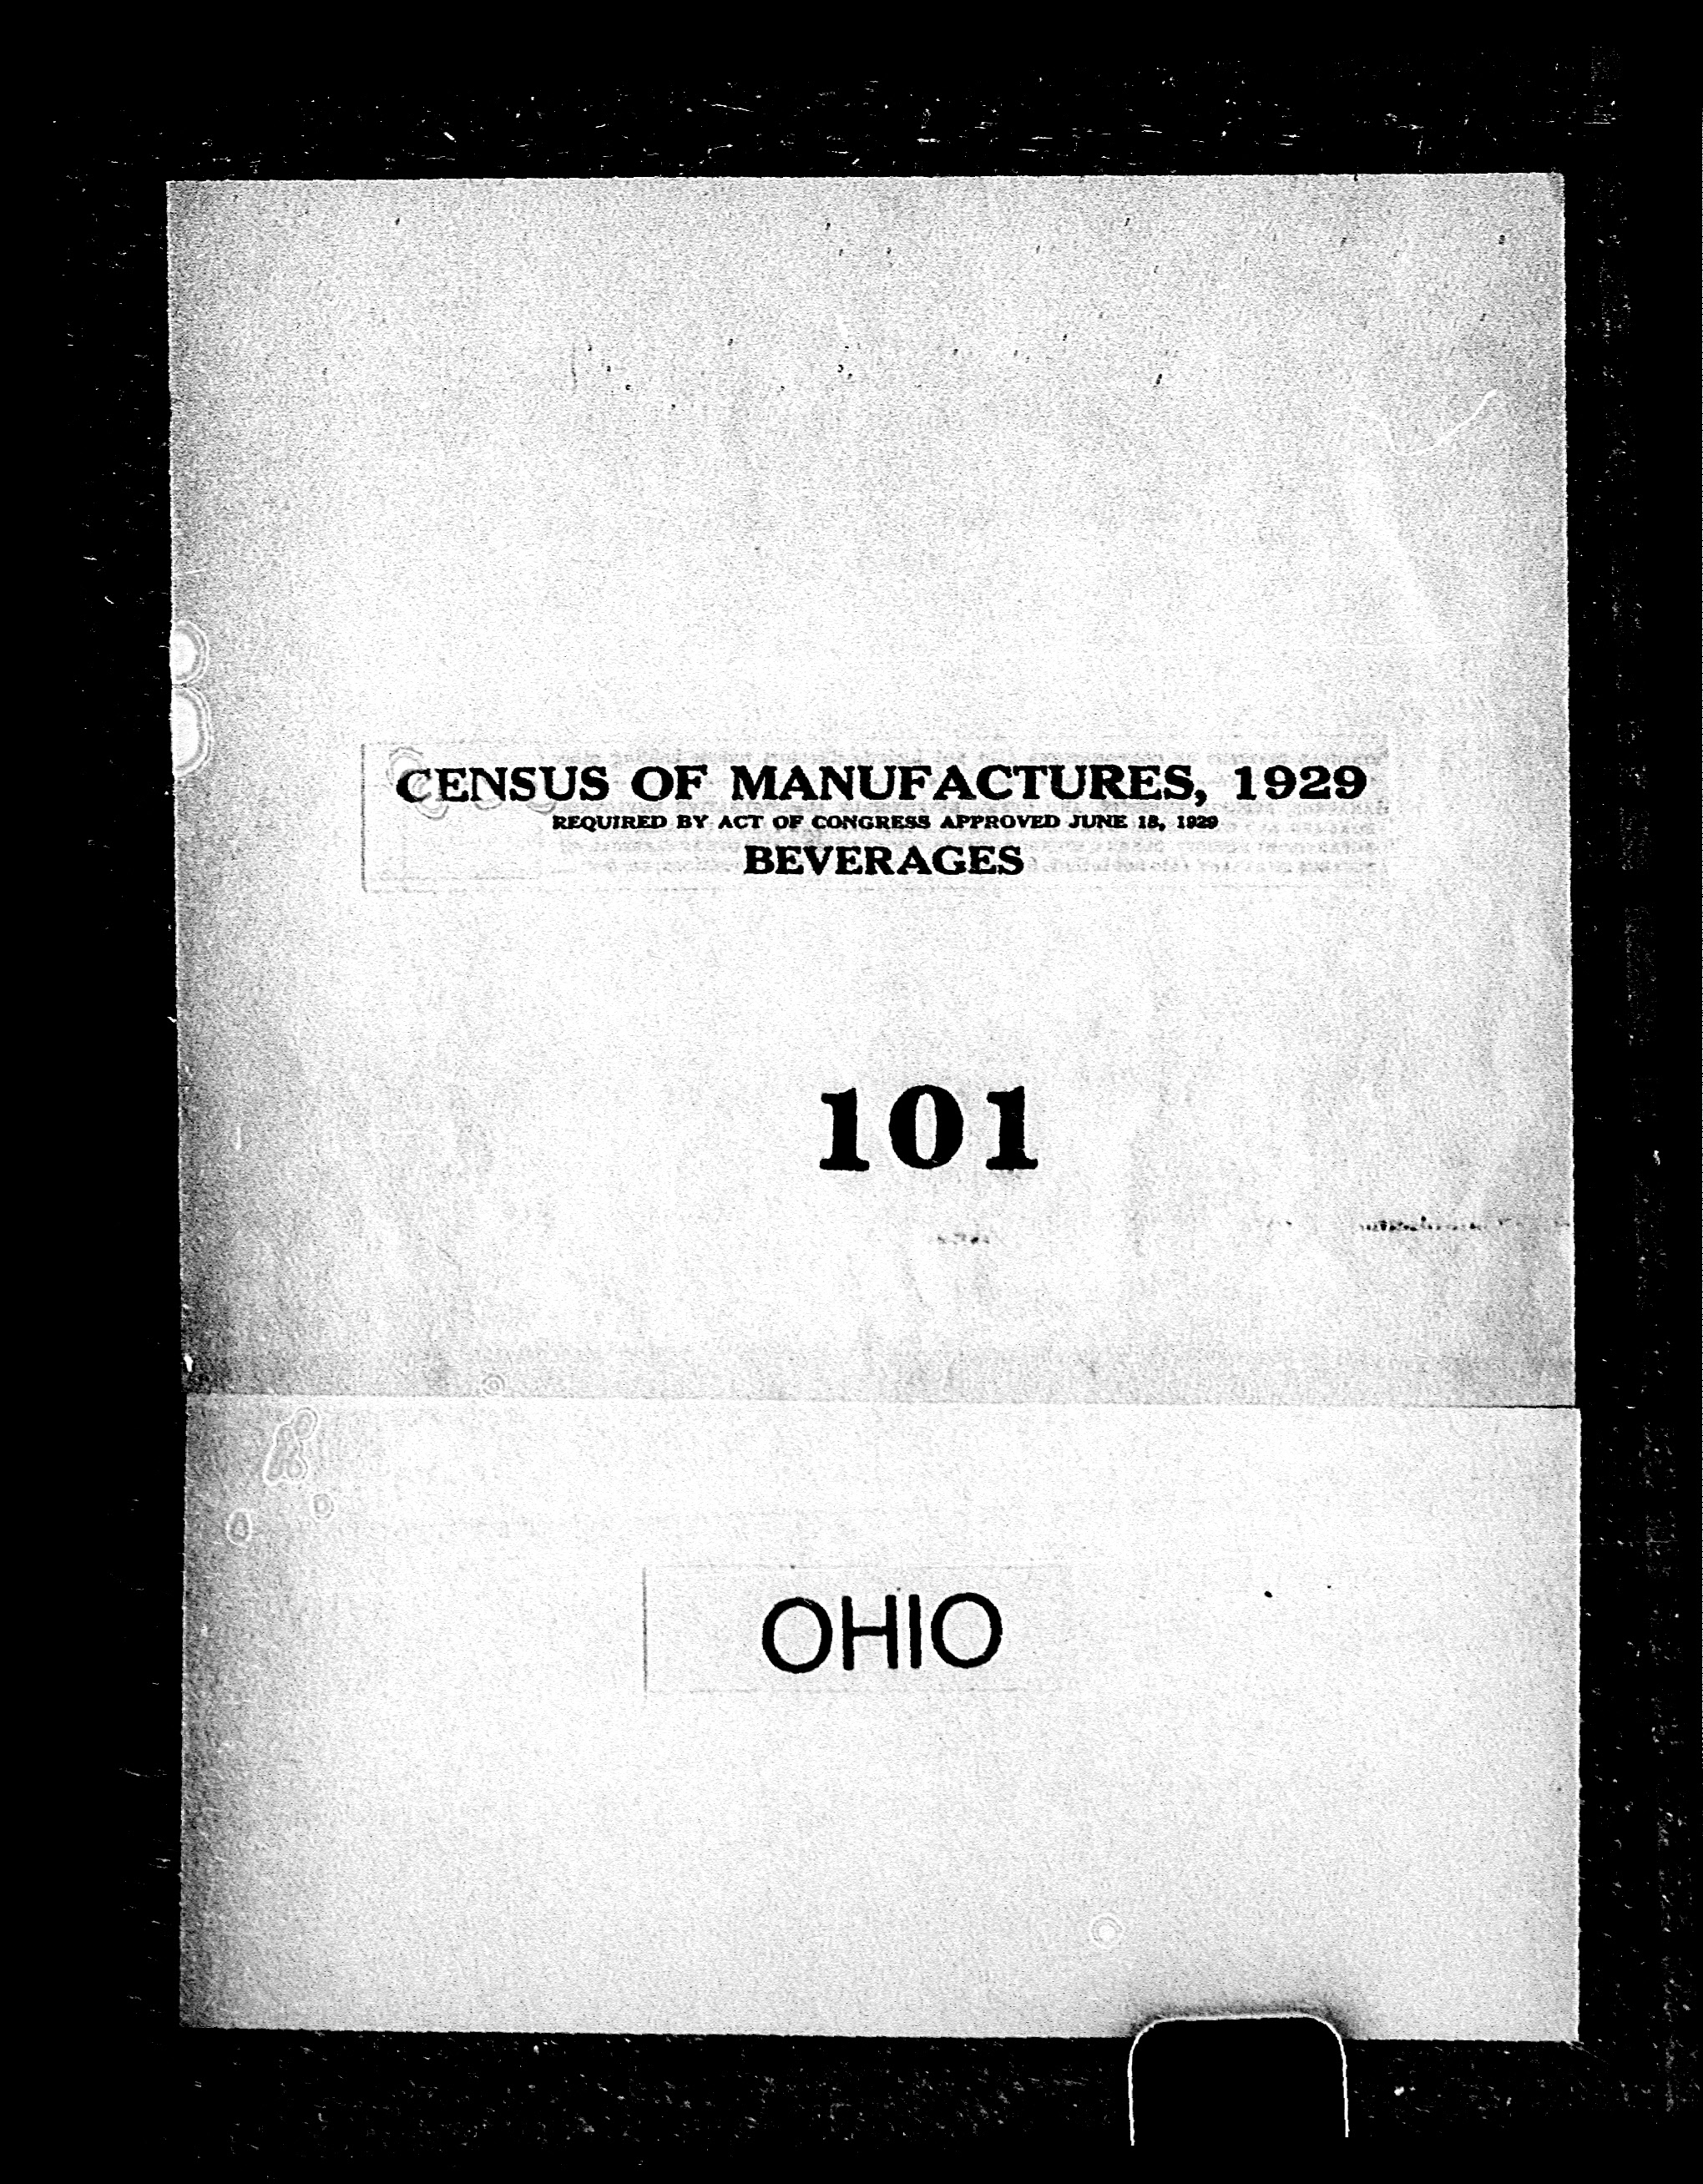 Ohio: Industry No. 101 - Beverages